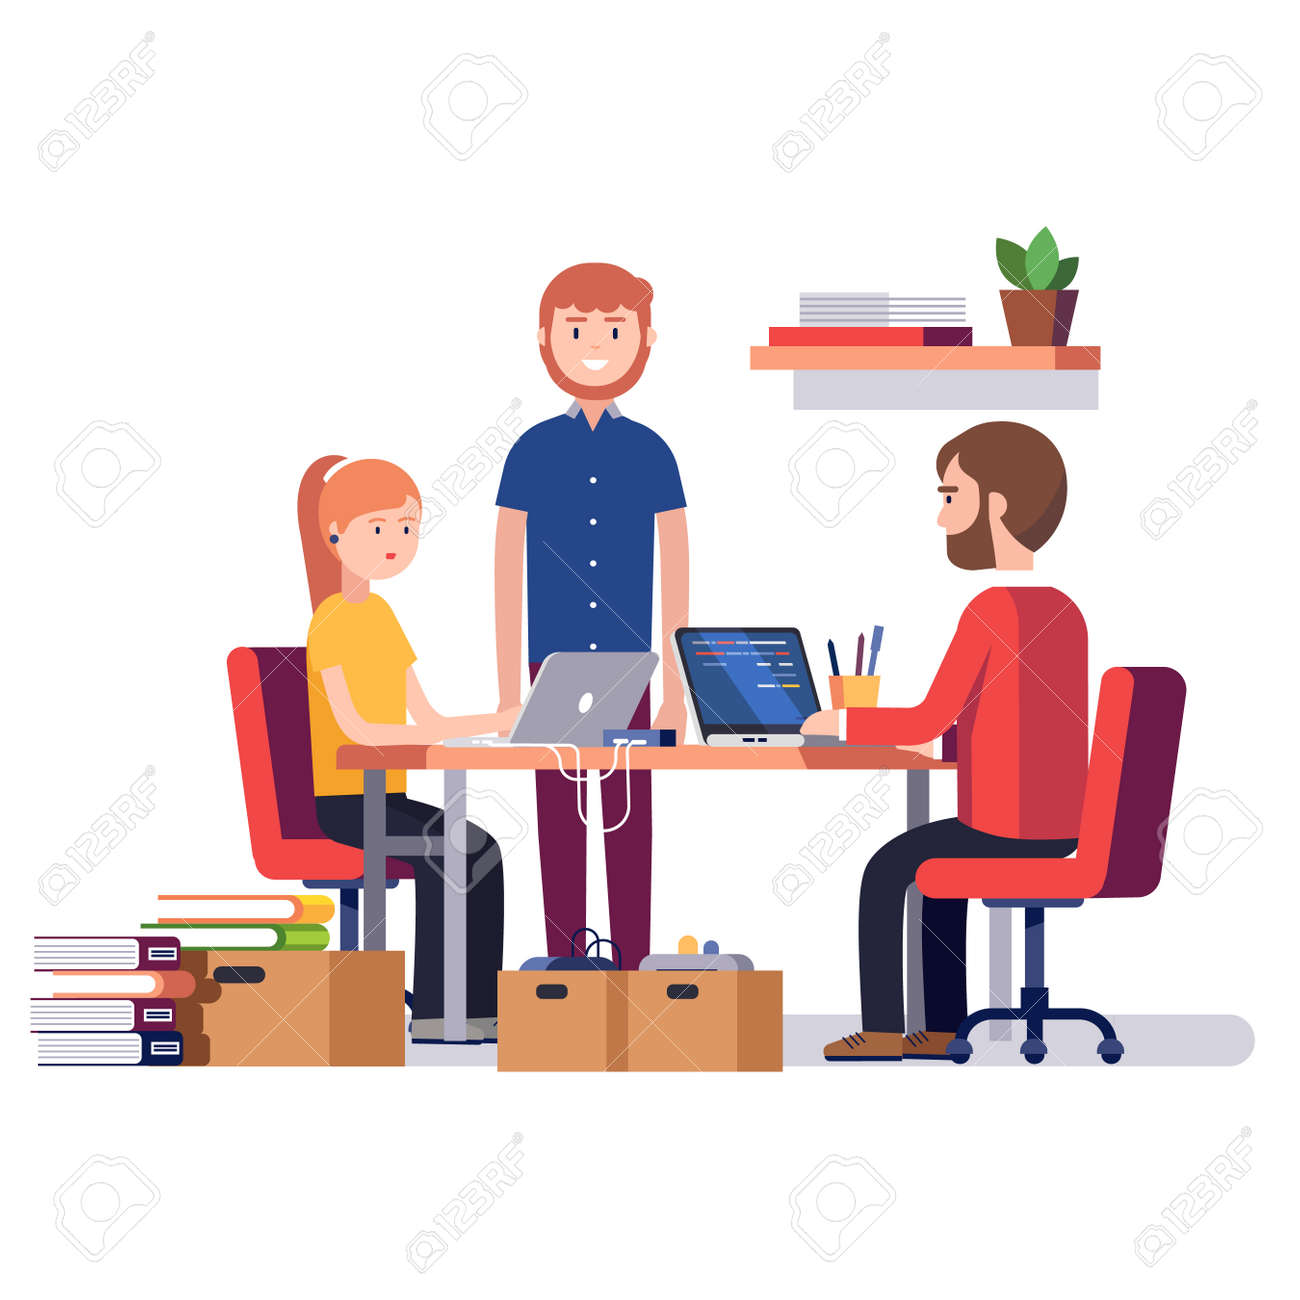 Small start up company. Game or app development. Group of young students software developers programming code together at home garage. Flat style vector illustration. - 67654577